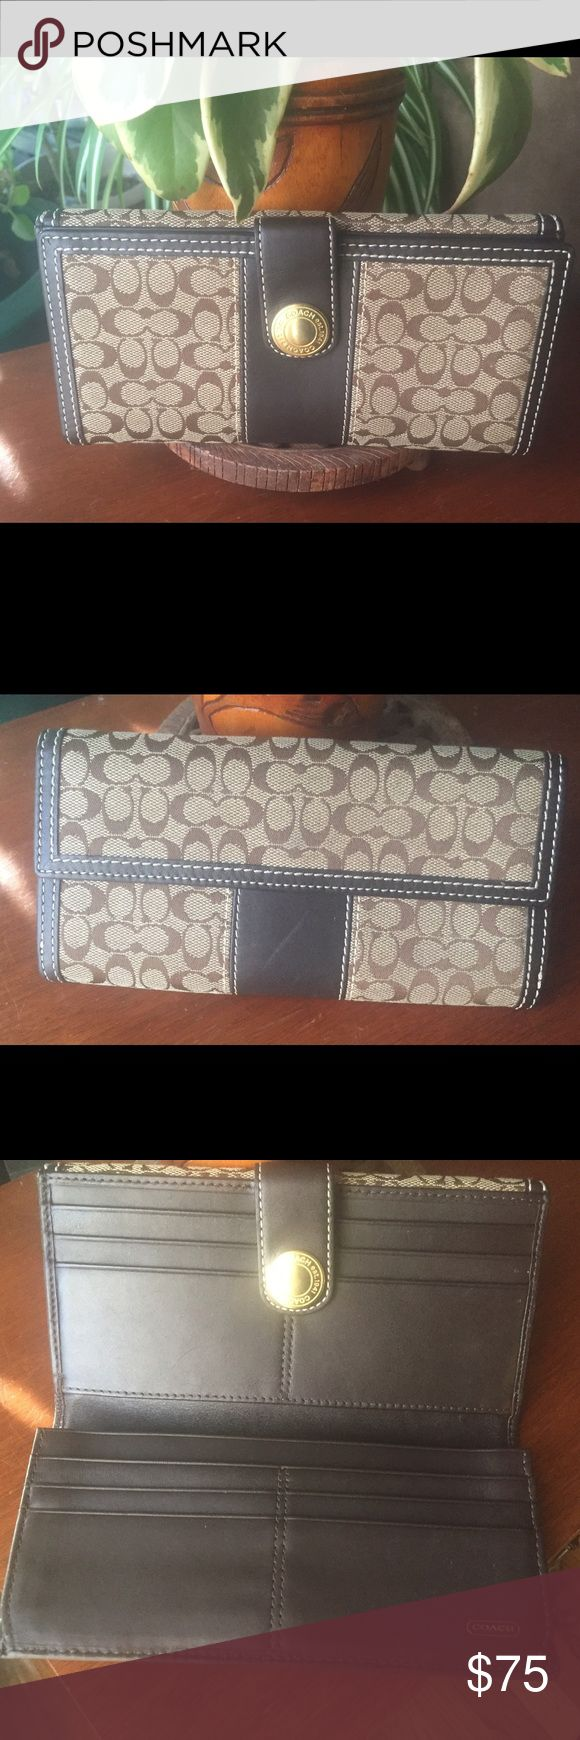 "Coach C Signature Bifold Wallet w/Leather Trim Coach C Signature Bifold Wallet Brown Jacquard Leather Trim   Approx. Measurements  •7 3/4"" Length  •4"" Height  •1"" Wide   Original retail price $248   Brown large signature ""C"" jacquard print with leather trim   •Gold tone hardware  •Coach signature lining                                        •12 credit card slots  •Bills slot; one coin slot at back •Two full length bill compartments  Flap and snap front closure  Pre-owned: excellent…"